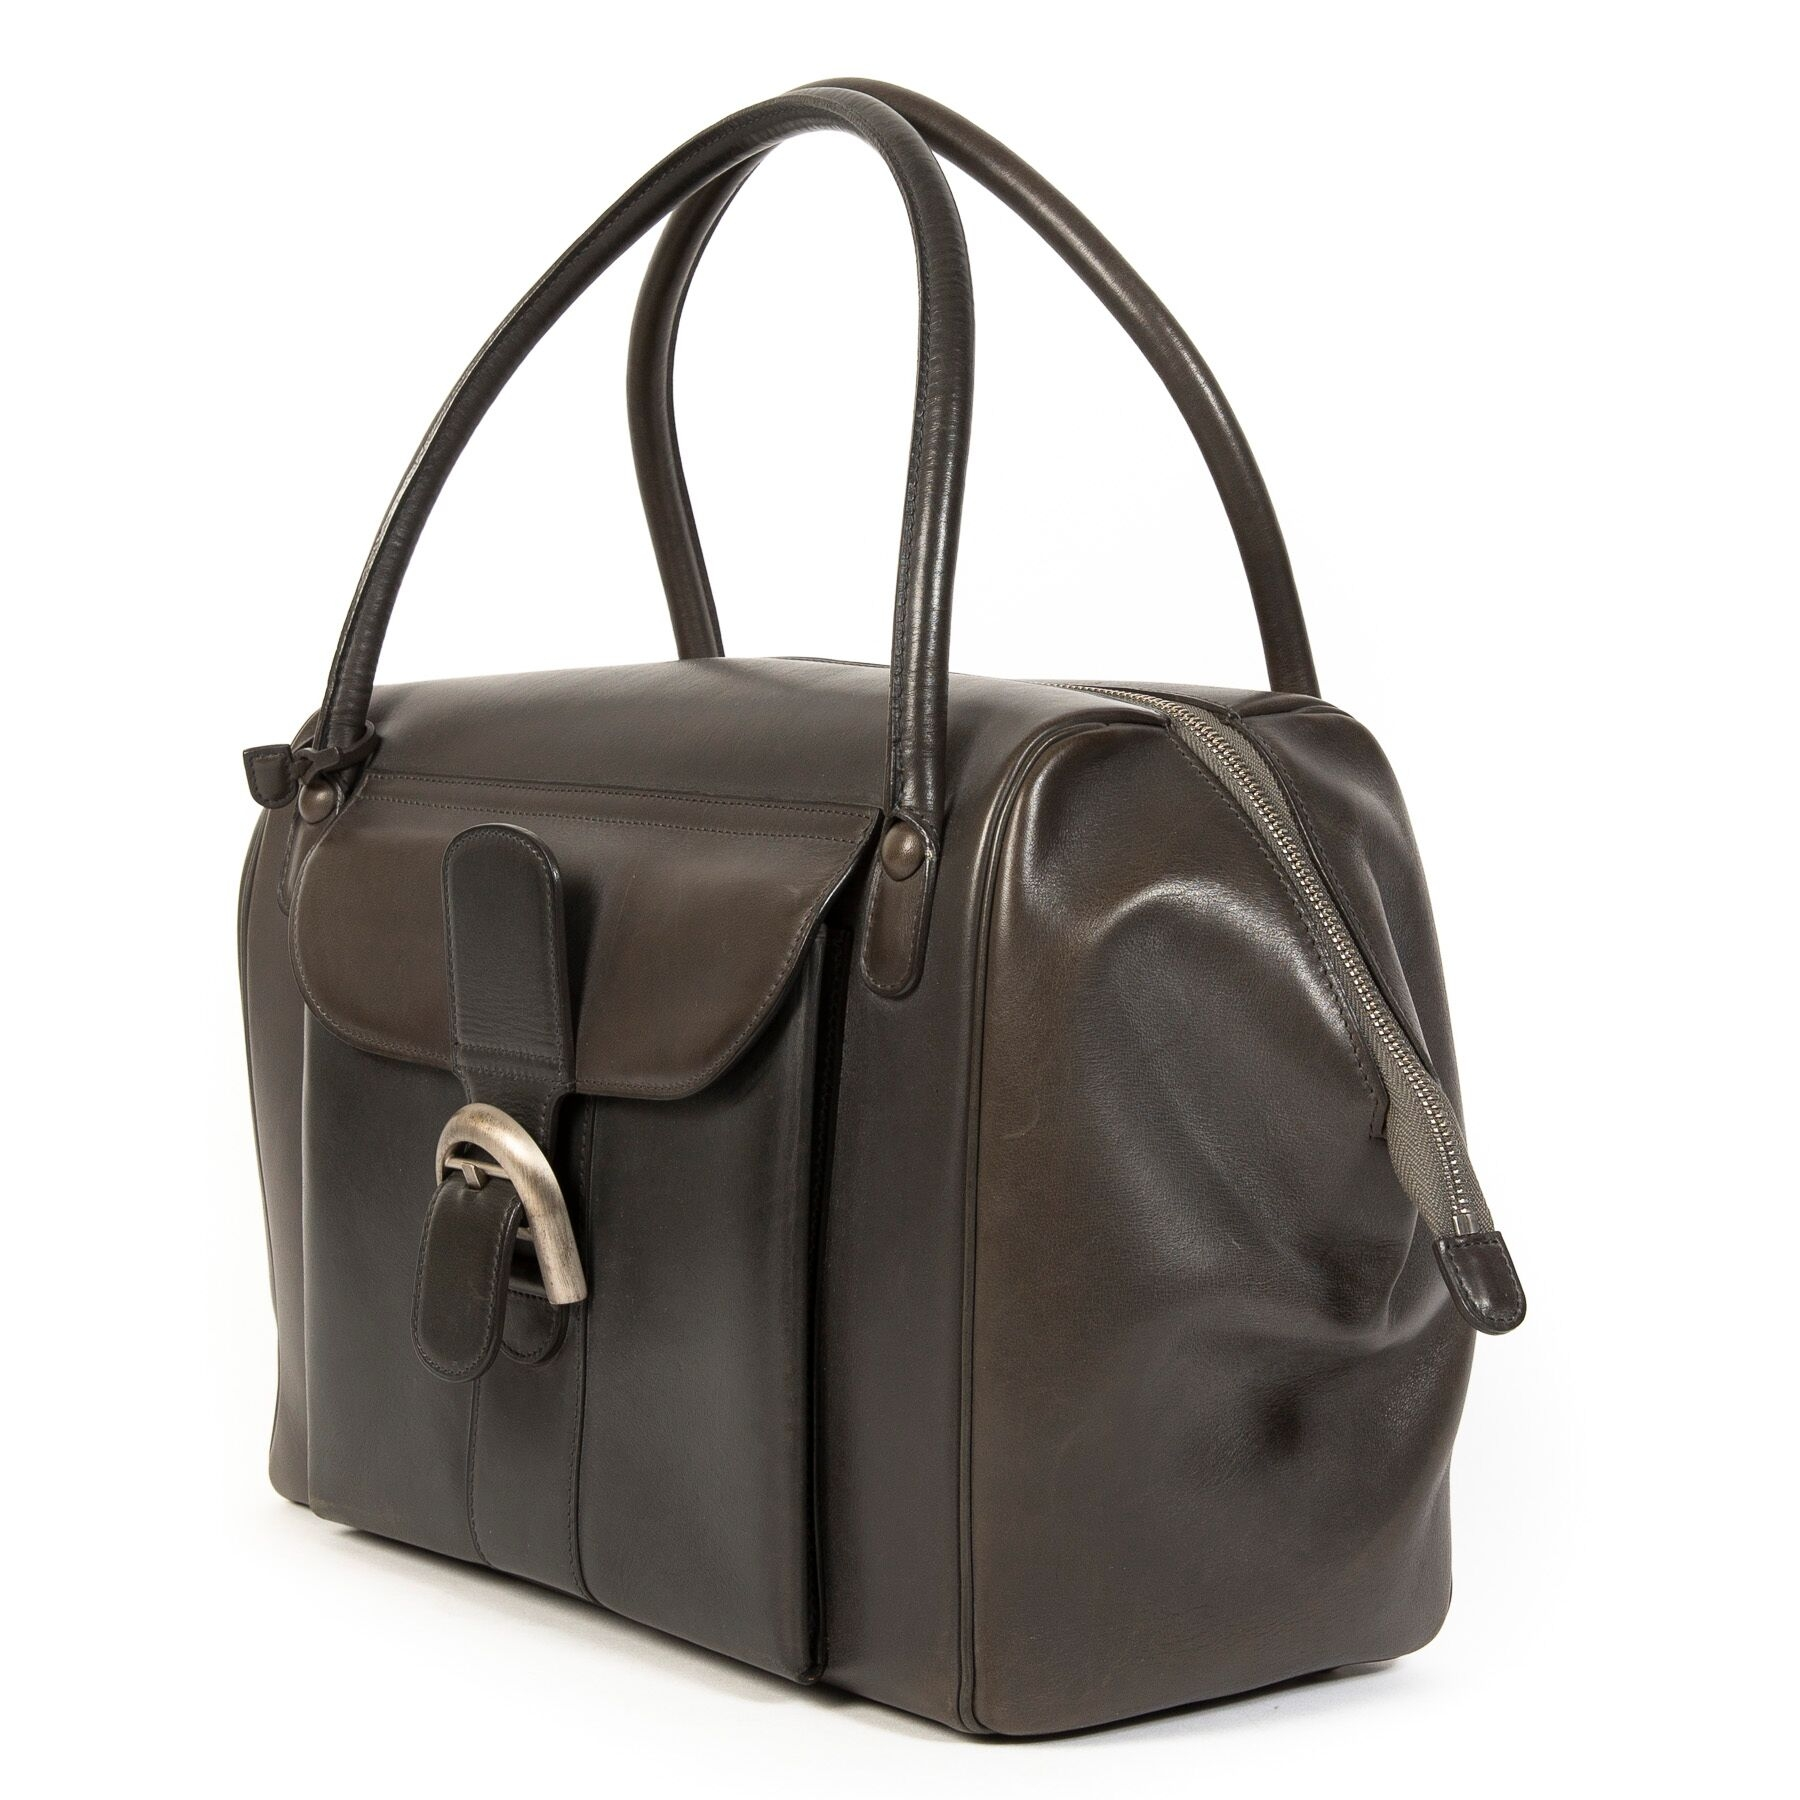 Buy authentic secondhand Delvaux Brilliant 12H at the right price at LabelLOV vintage webshop.